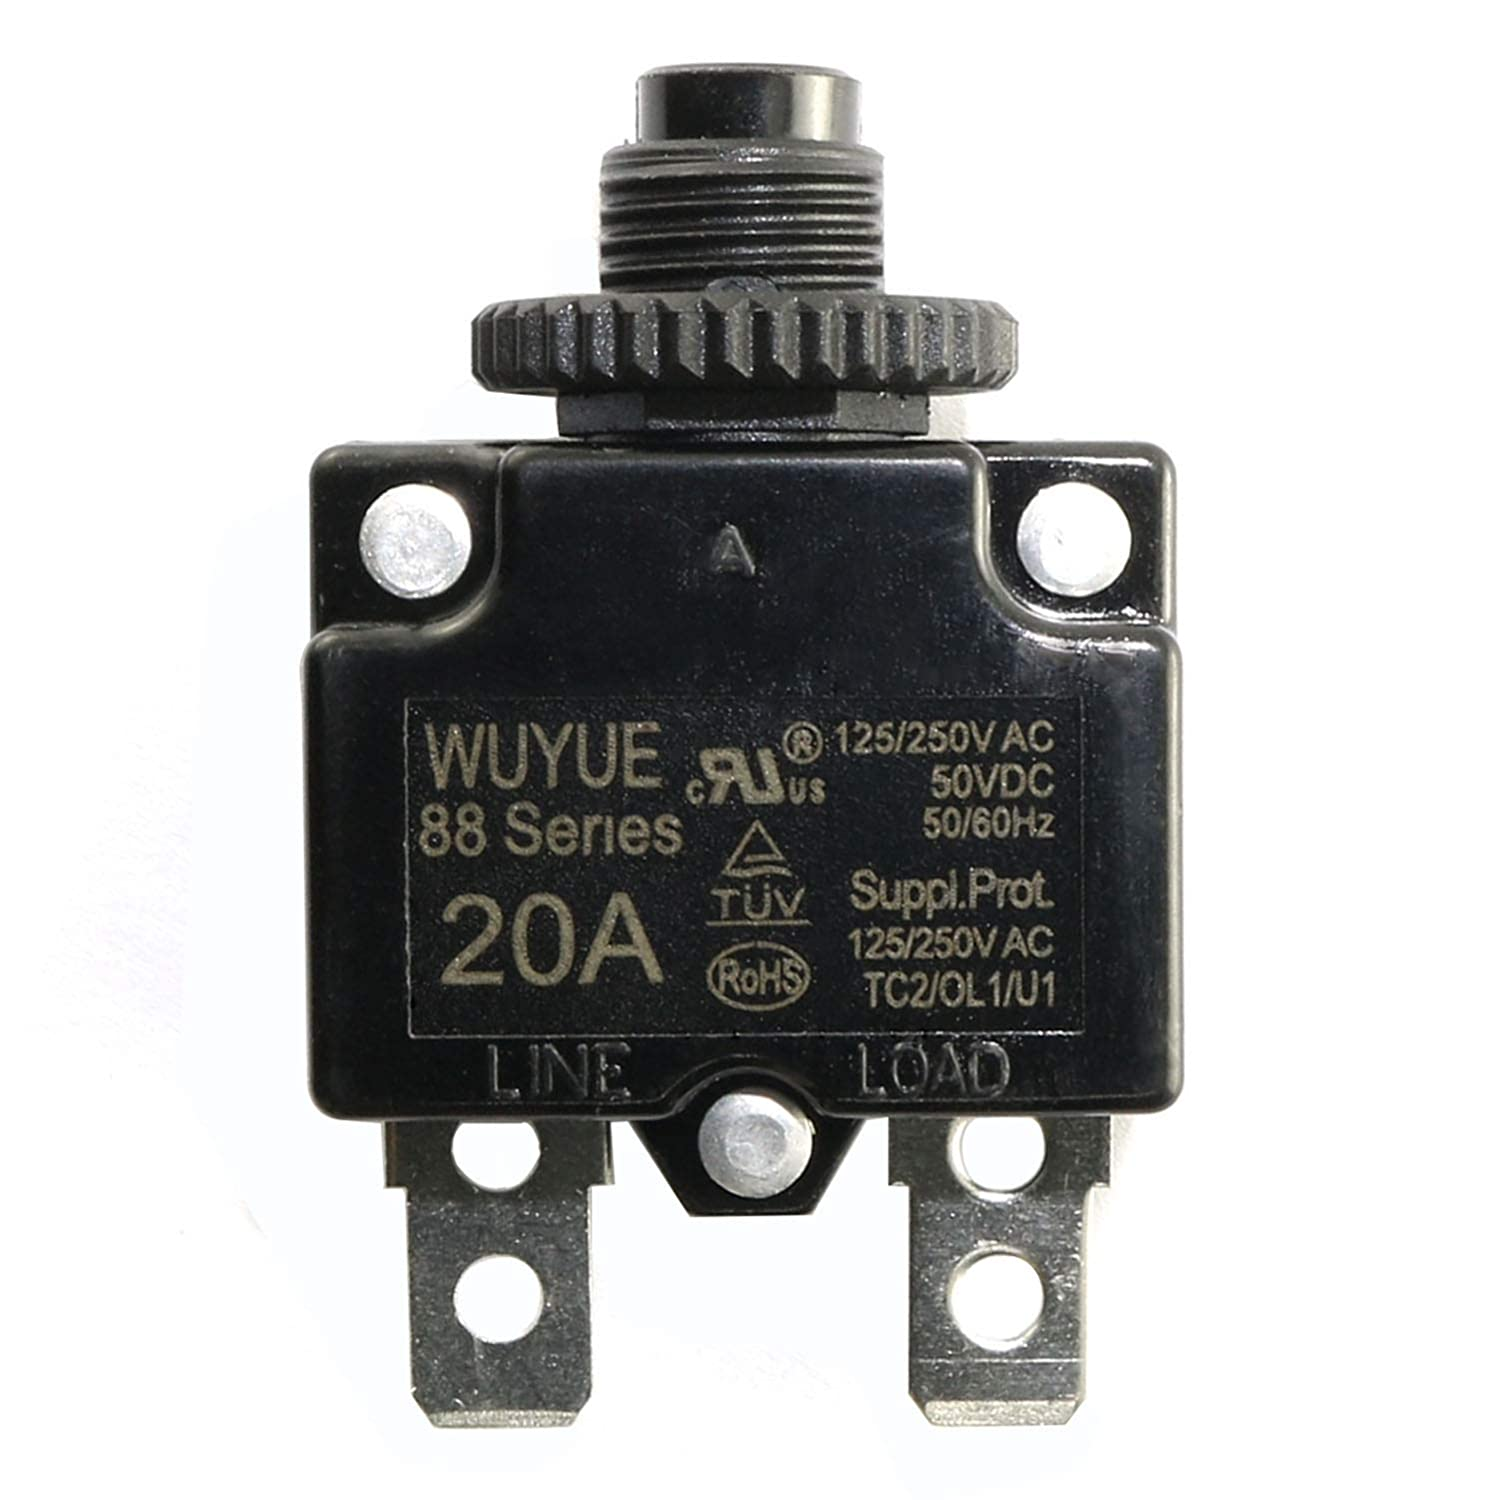 250VAC 15A Switch Push Reset Button Circuit Breaker Overload Protector